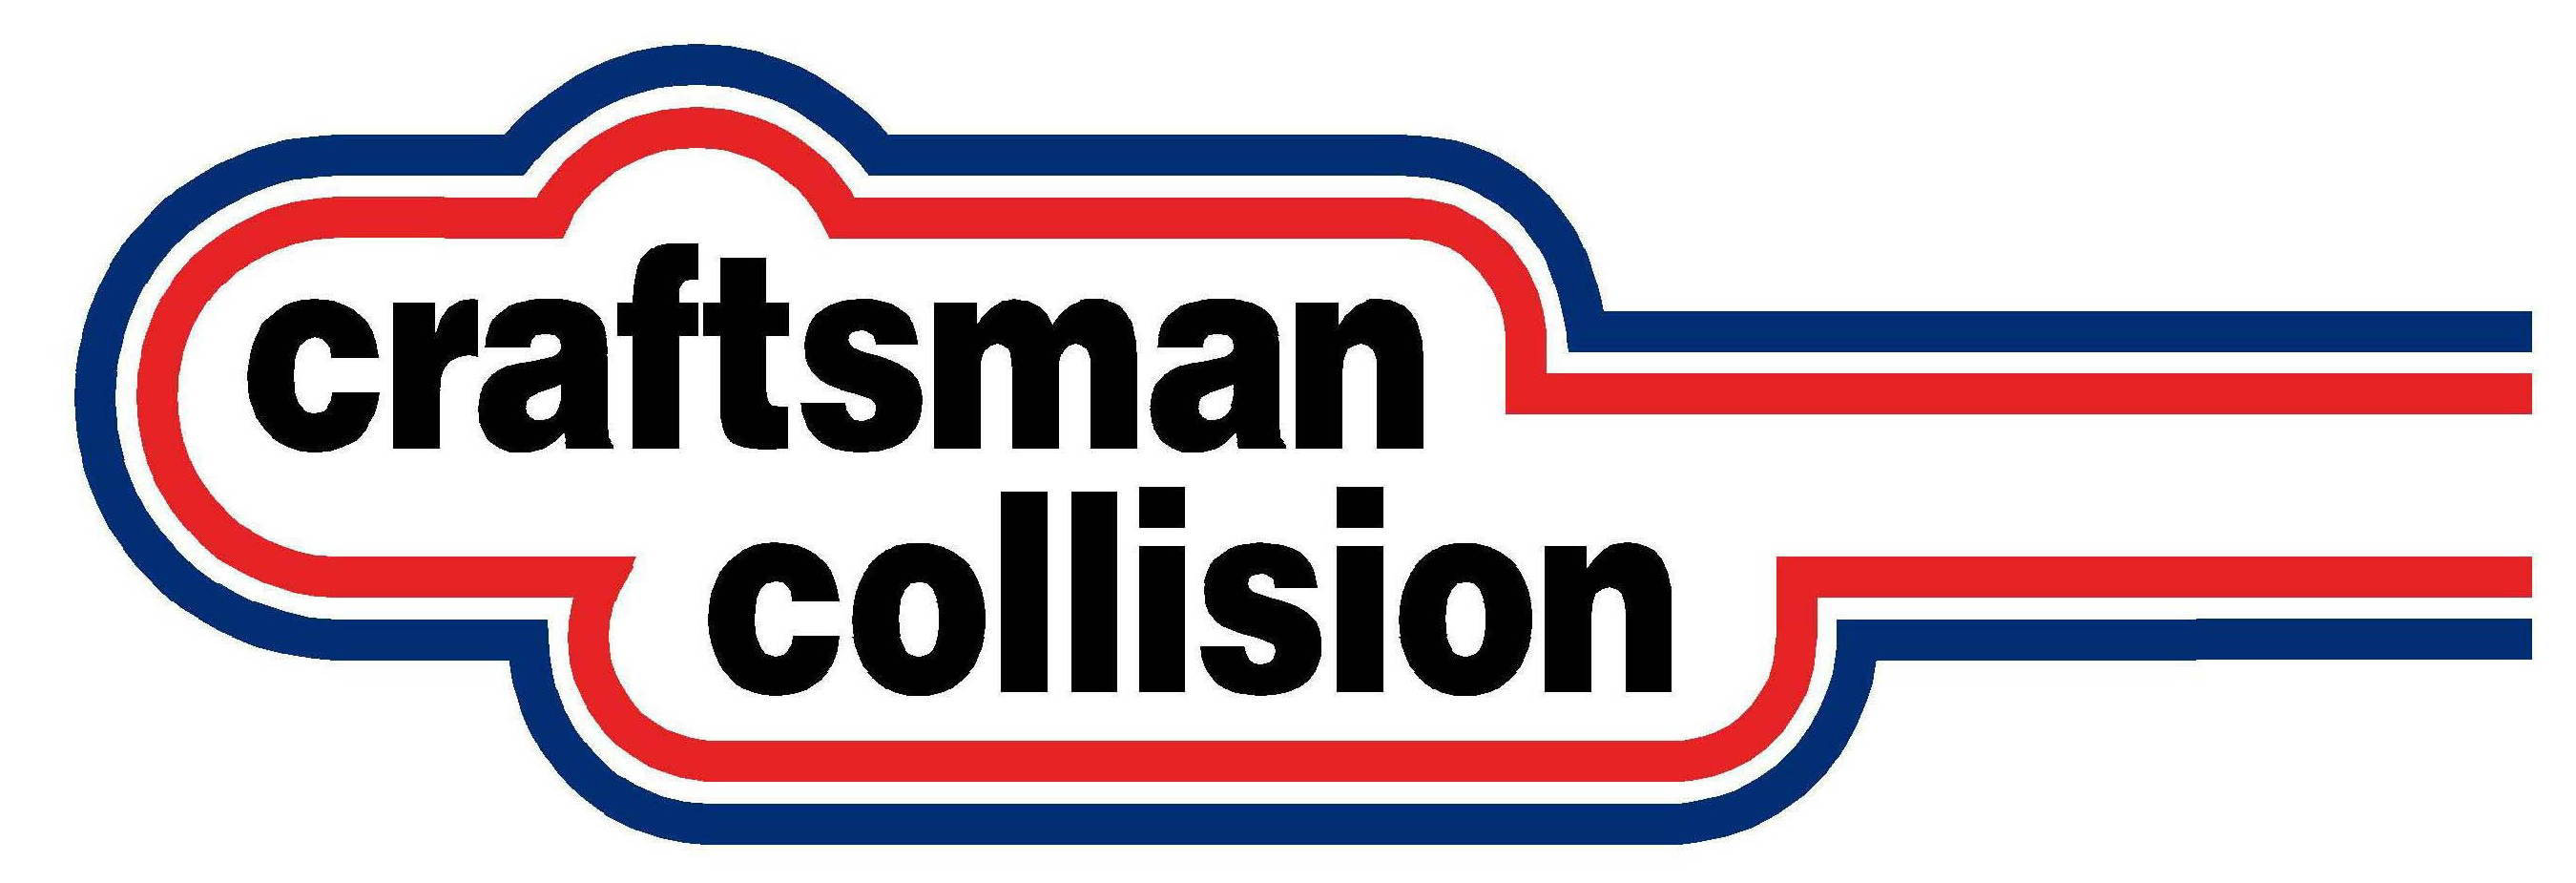 Craftsman Collision logo